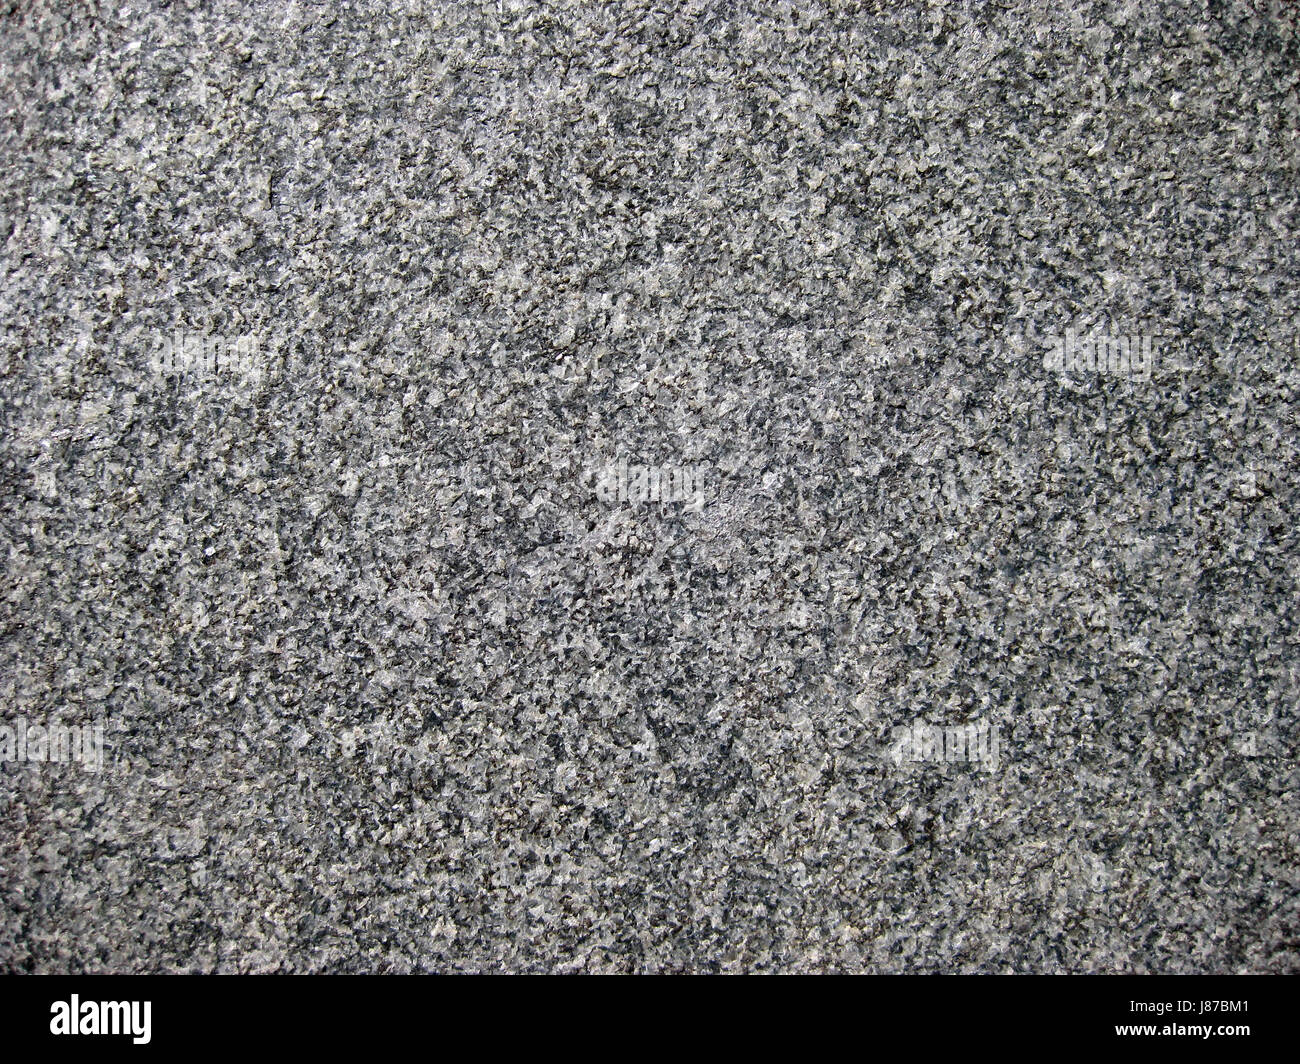 object, stone, detail admission, design, shaping, formation, shape, model, - Stock Image